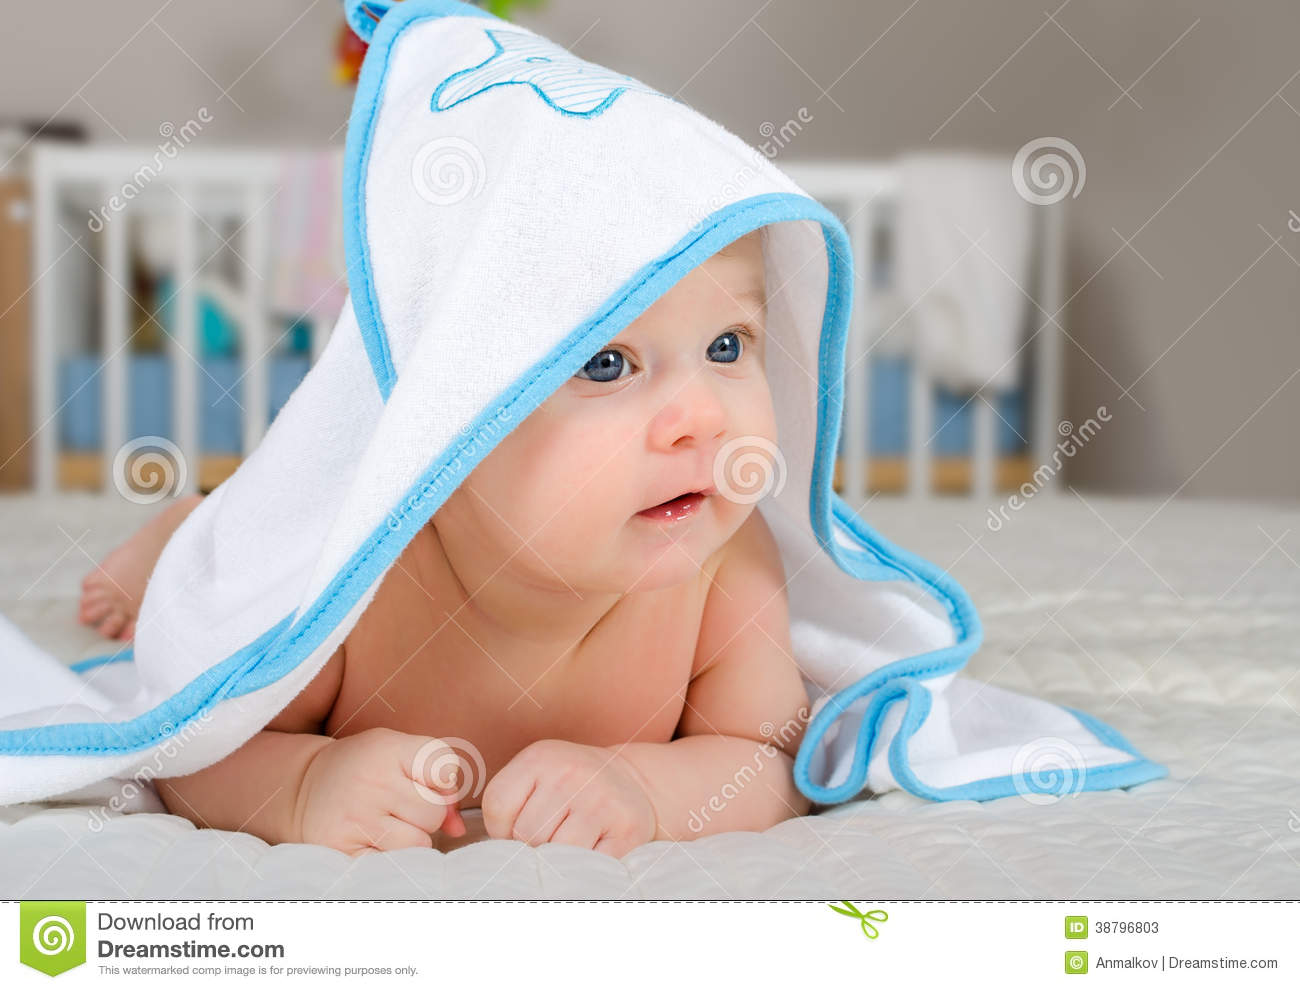 cute baby boy in a hooded towel after bath stock image - image of